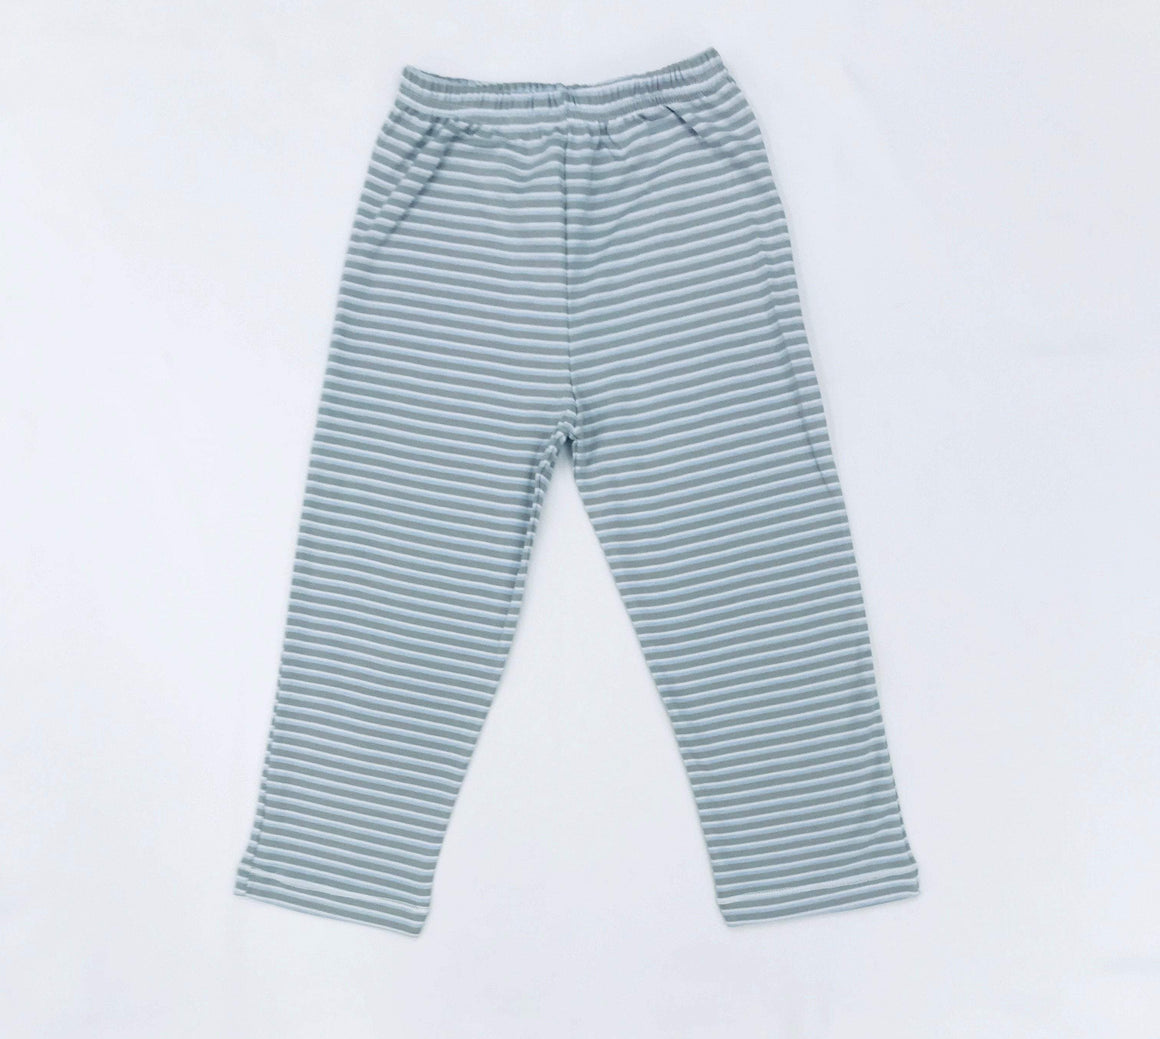 Squiggles by Charlie Boys Apparel Squiggles by Charlie Boys Blue Stripe Pima Cotton Pants